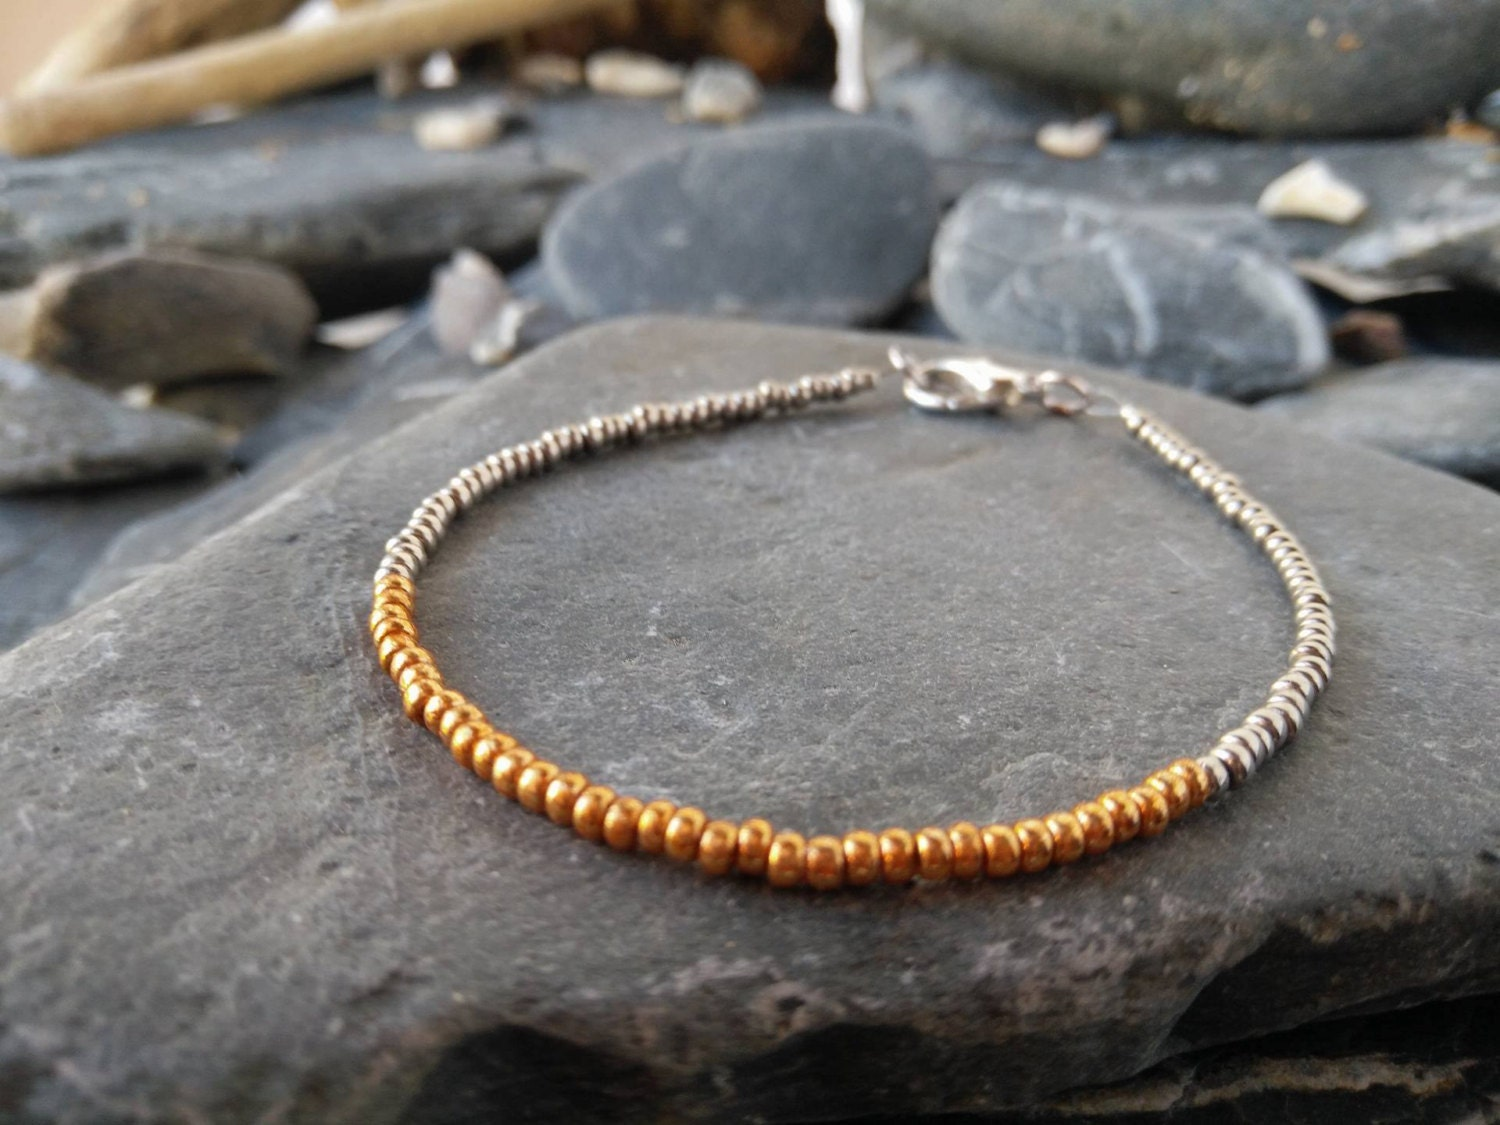 Silver and Gold Seed Bead Bracelet  Silver and Gold Bracelet  Stacking Bracelet  Seed Bead Bracelet  Dainty Bracelet  Handmade Bracelet